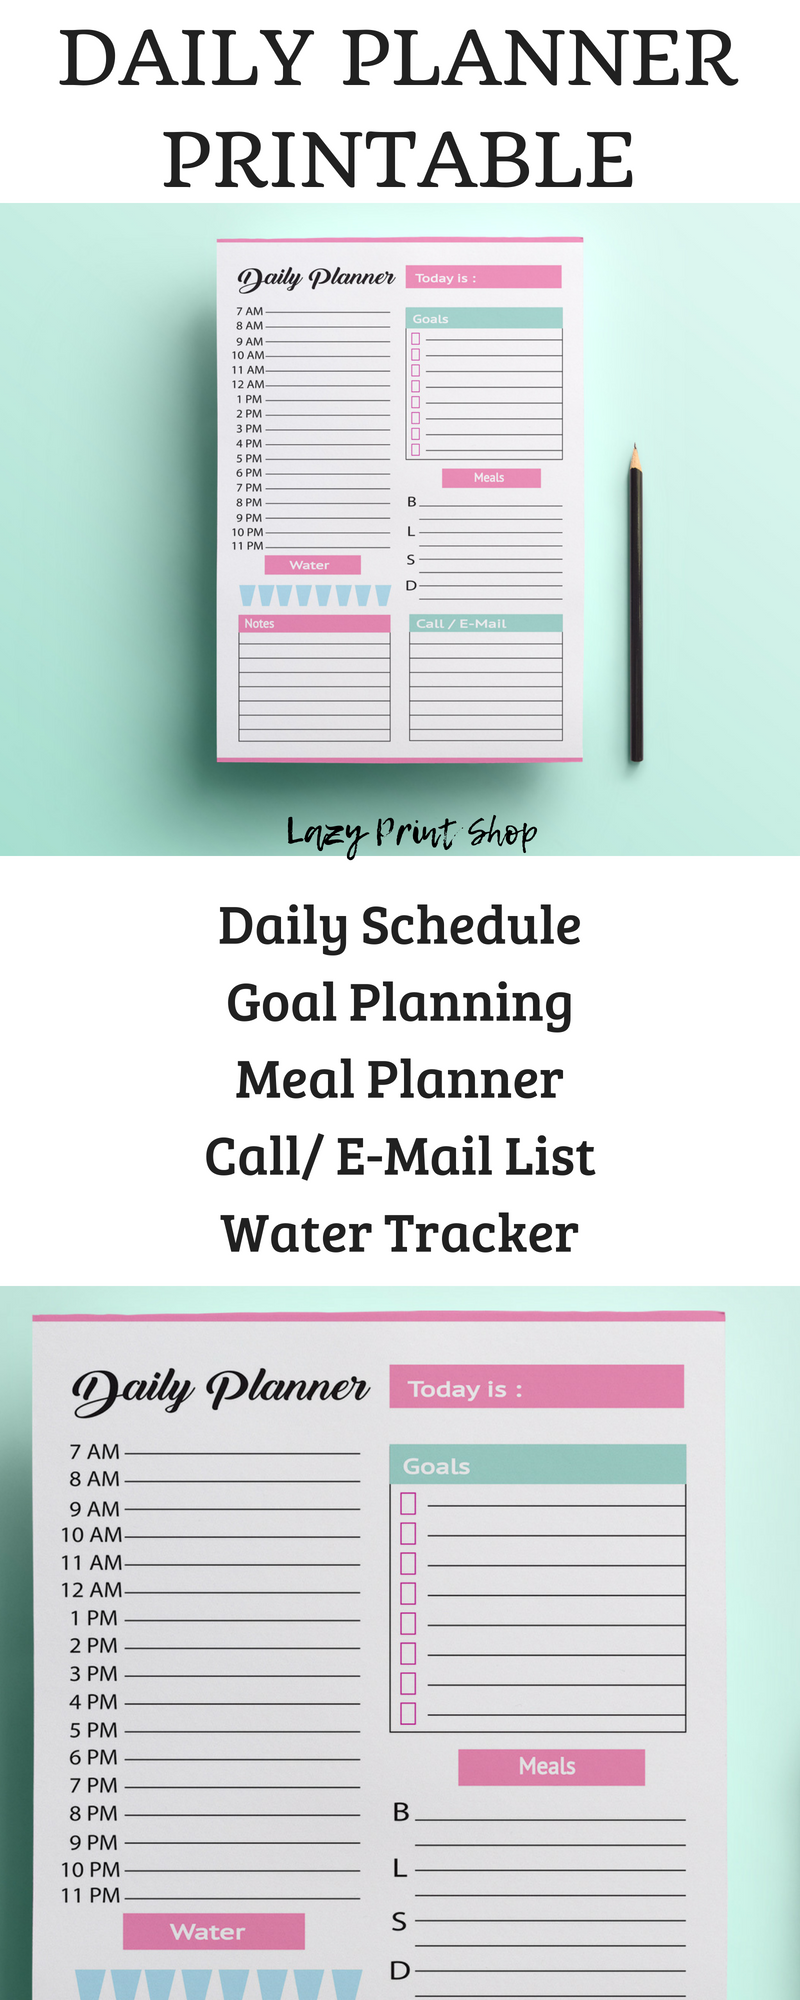 daily planner day planner personal planner personal organiser